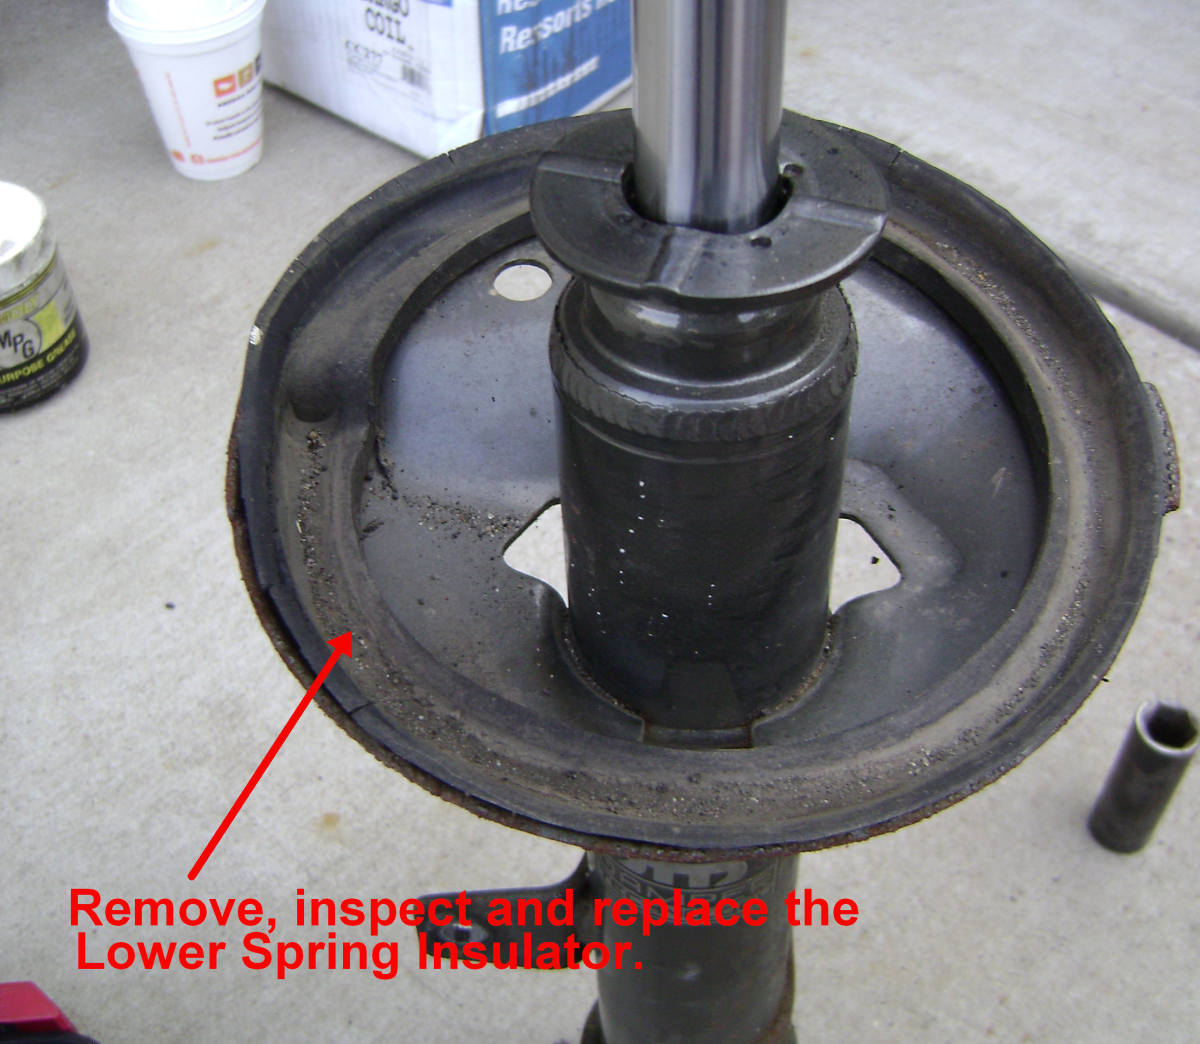 Remove the Camry rear strut spring insulator